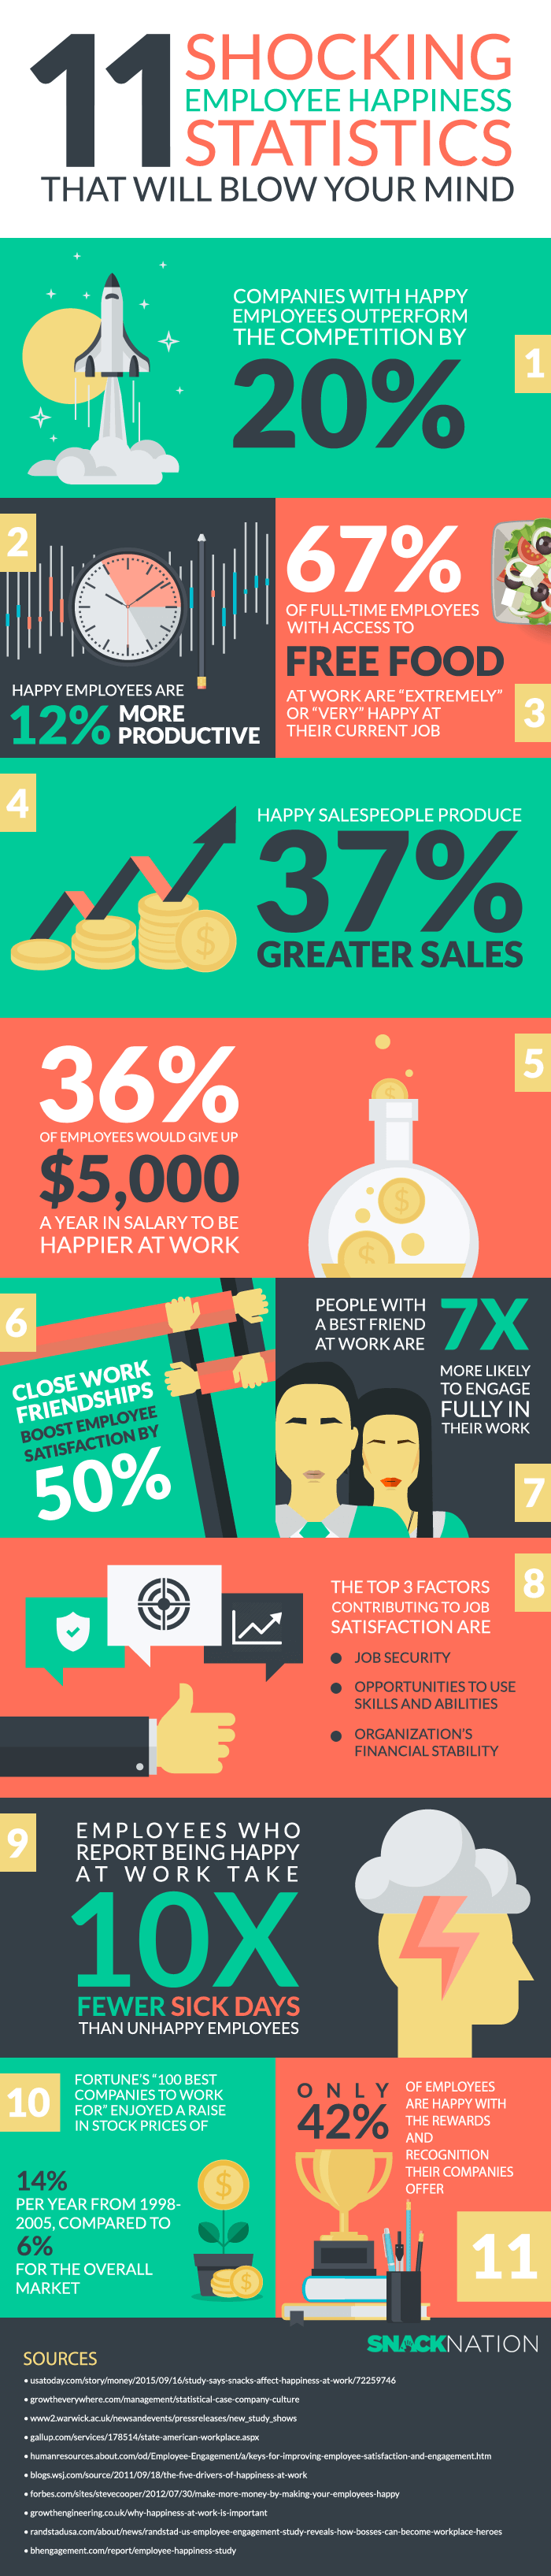 Employee-happiness-infographic_snacknation